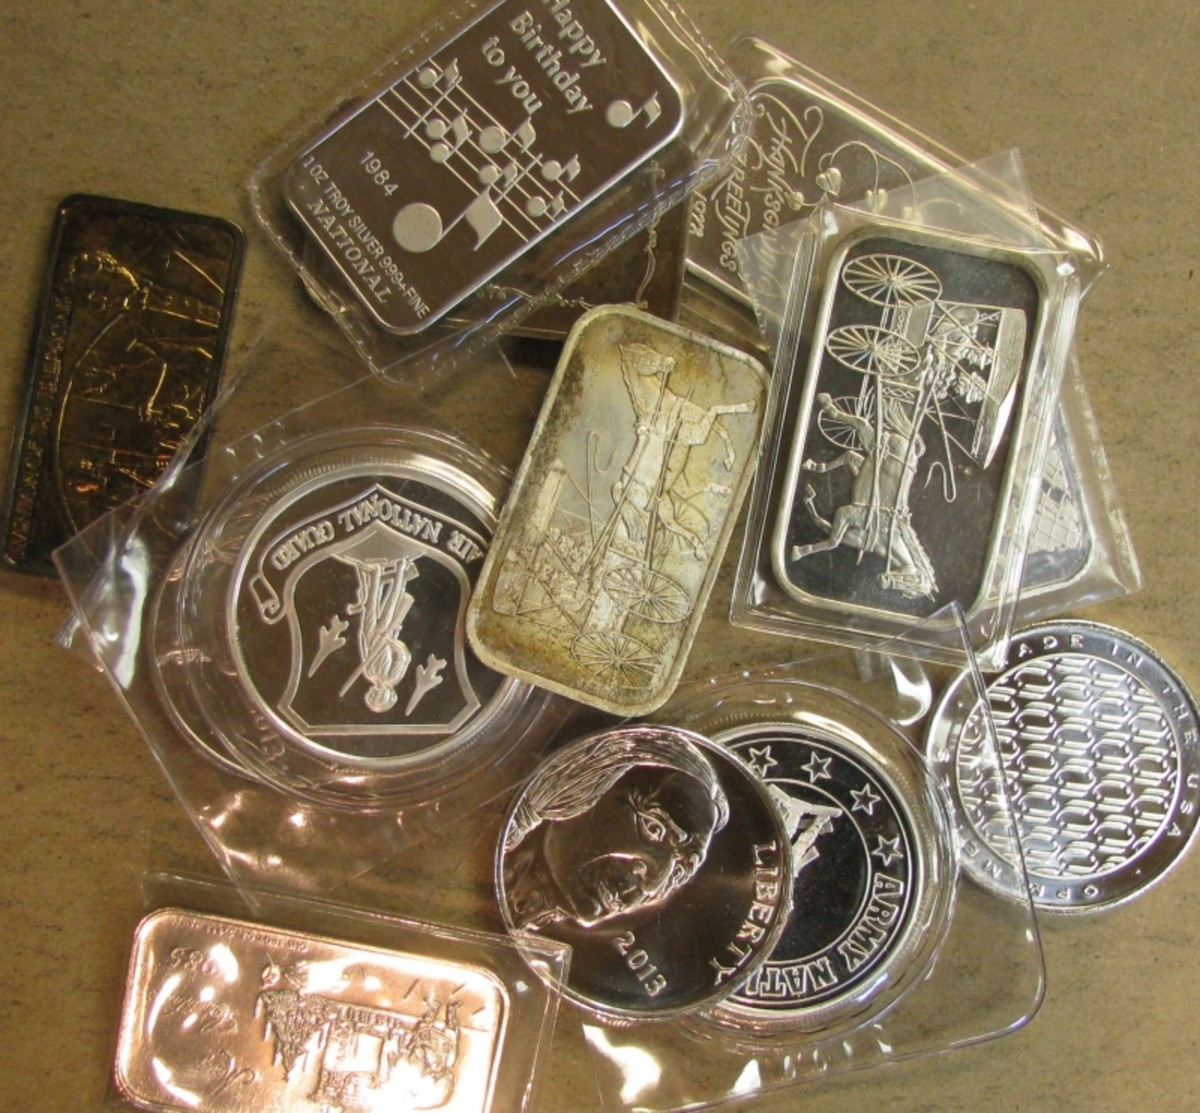 999 Fine Silver Bullion Bars and Rounds